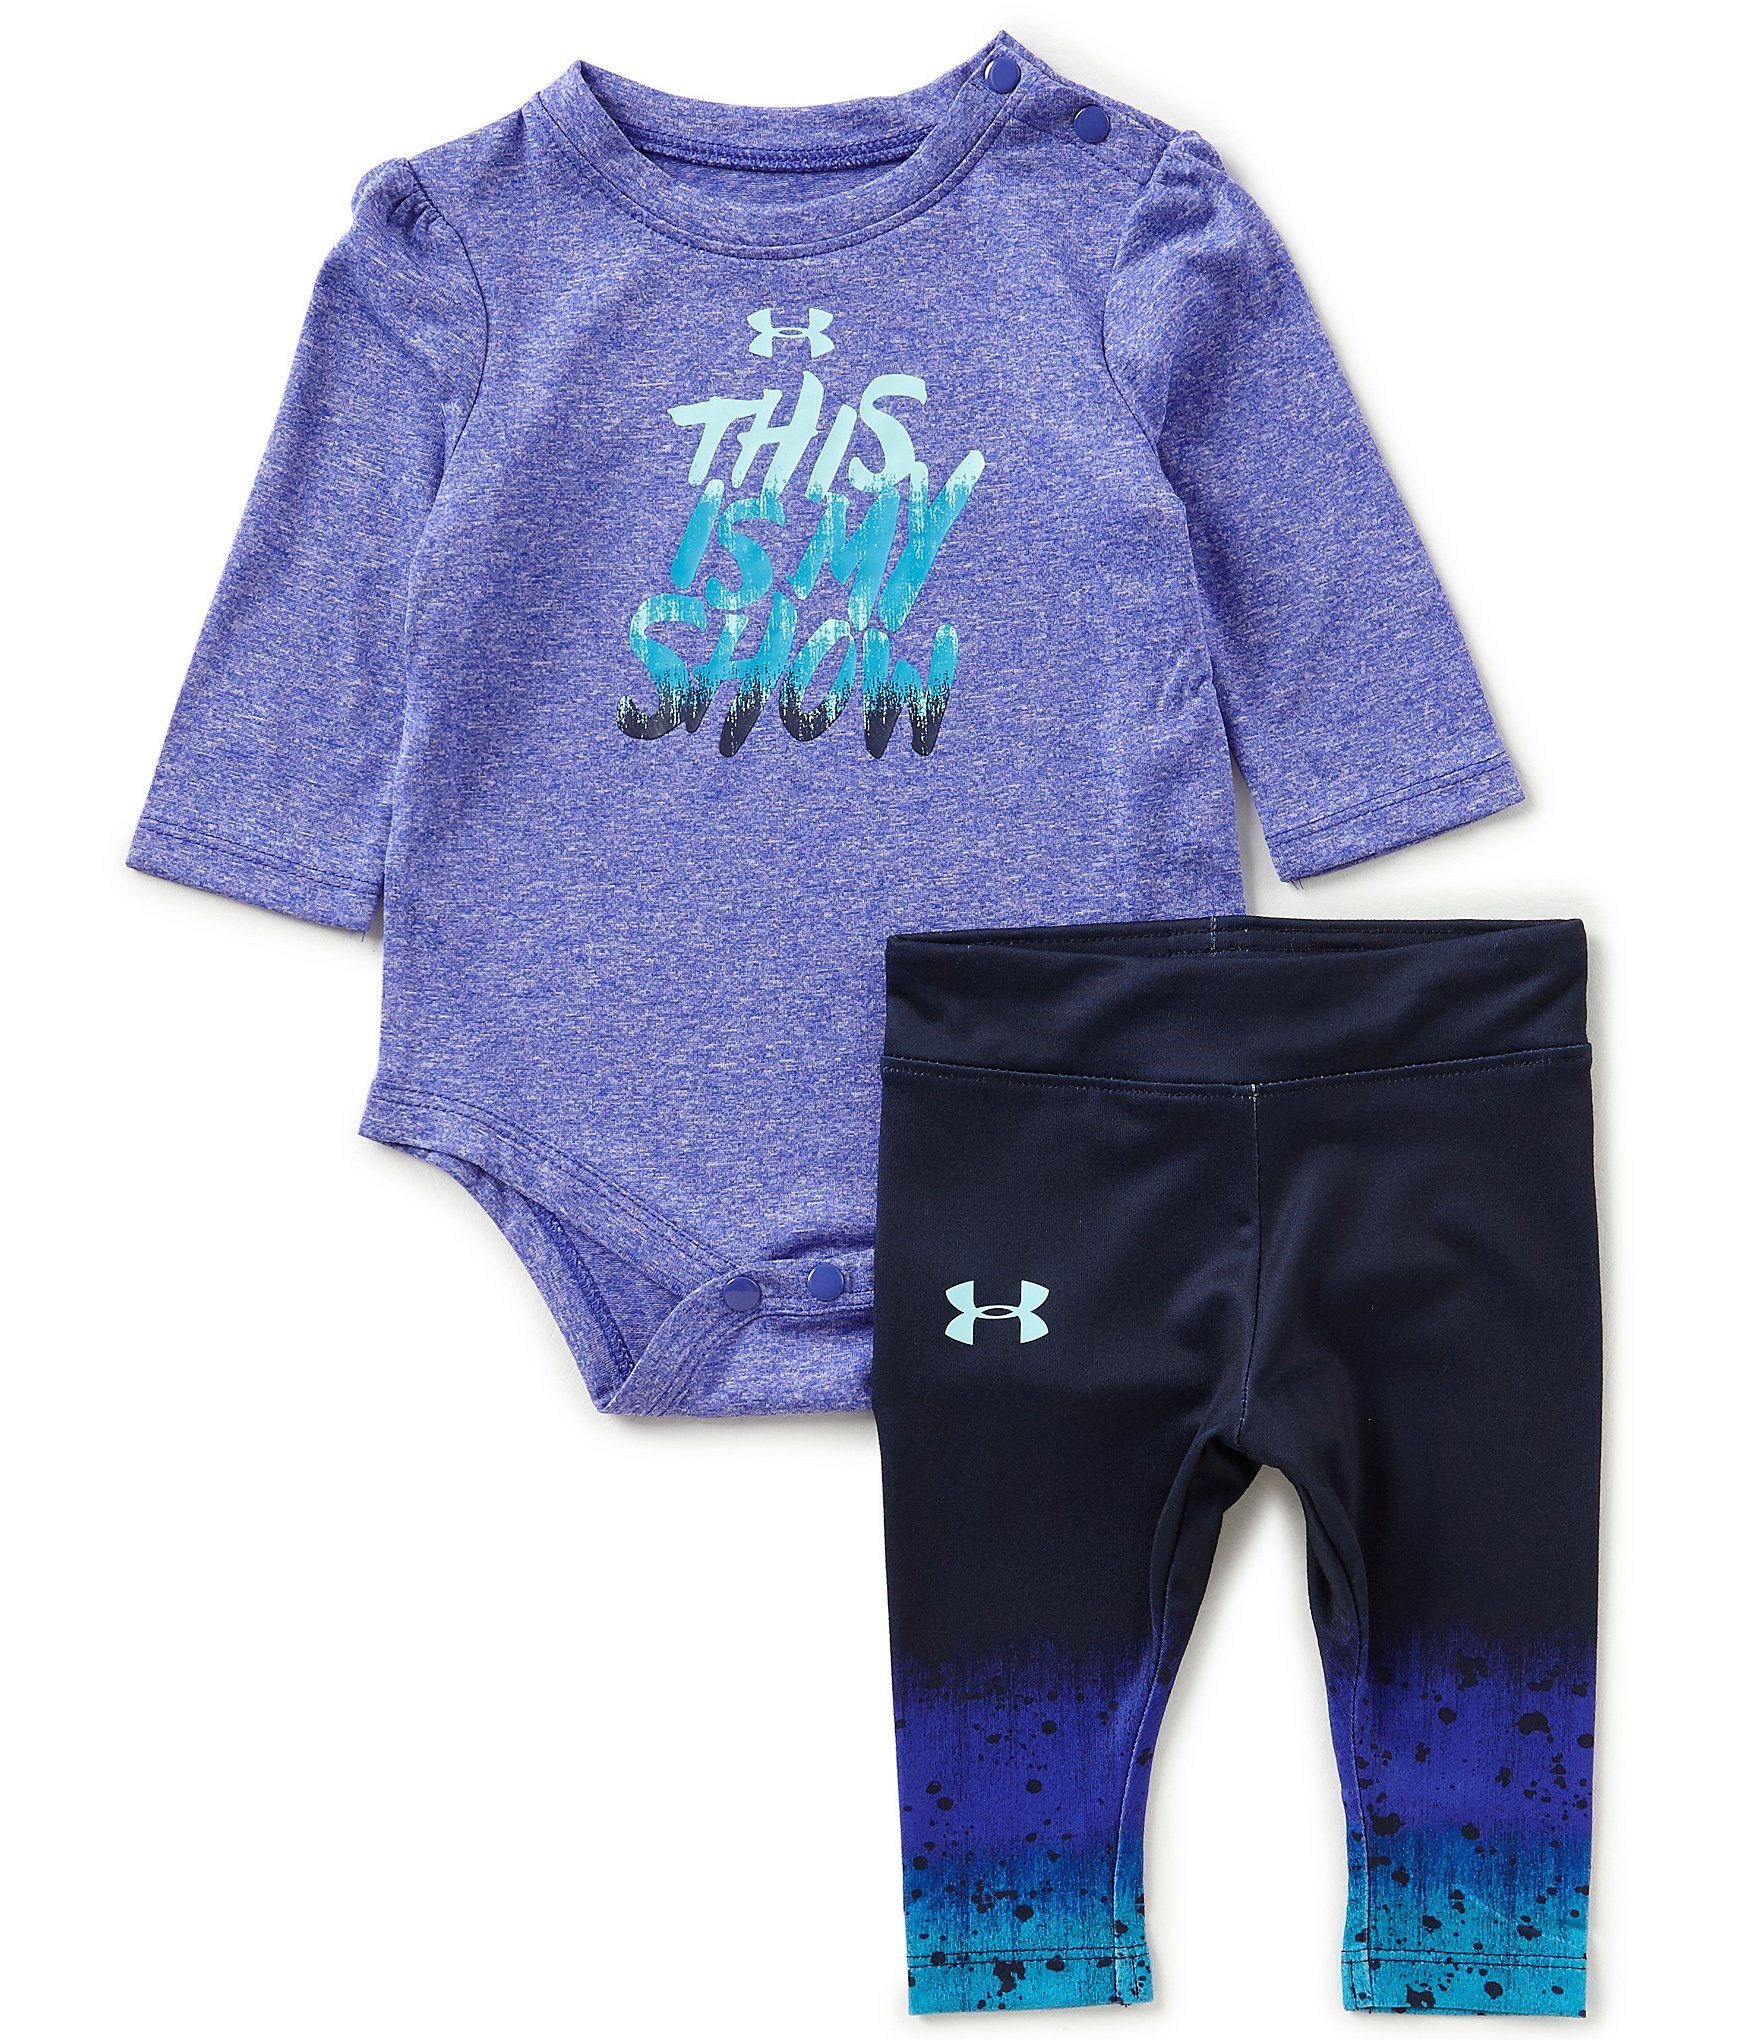 Under Armour Baby Girls Newborn12 Months This Is My Show Bodysuit